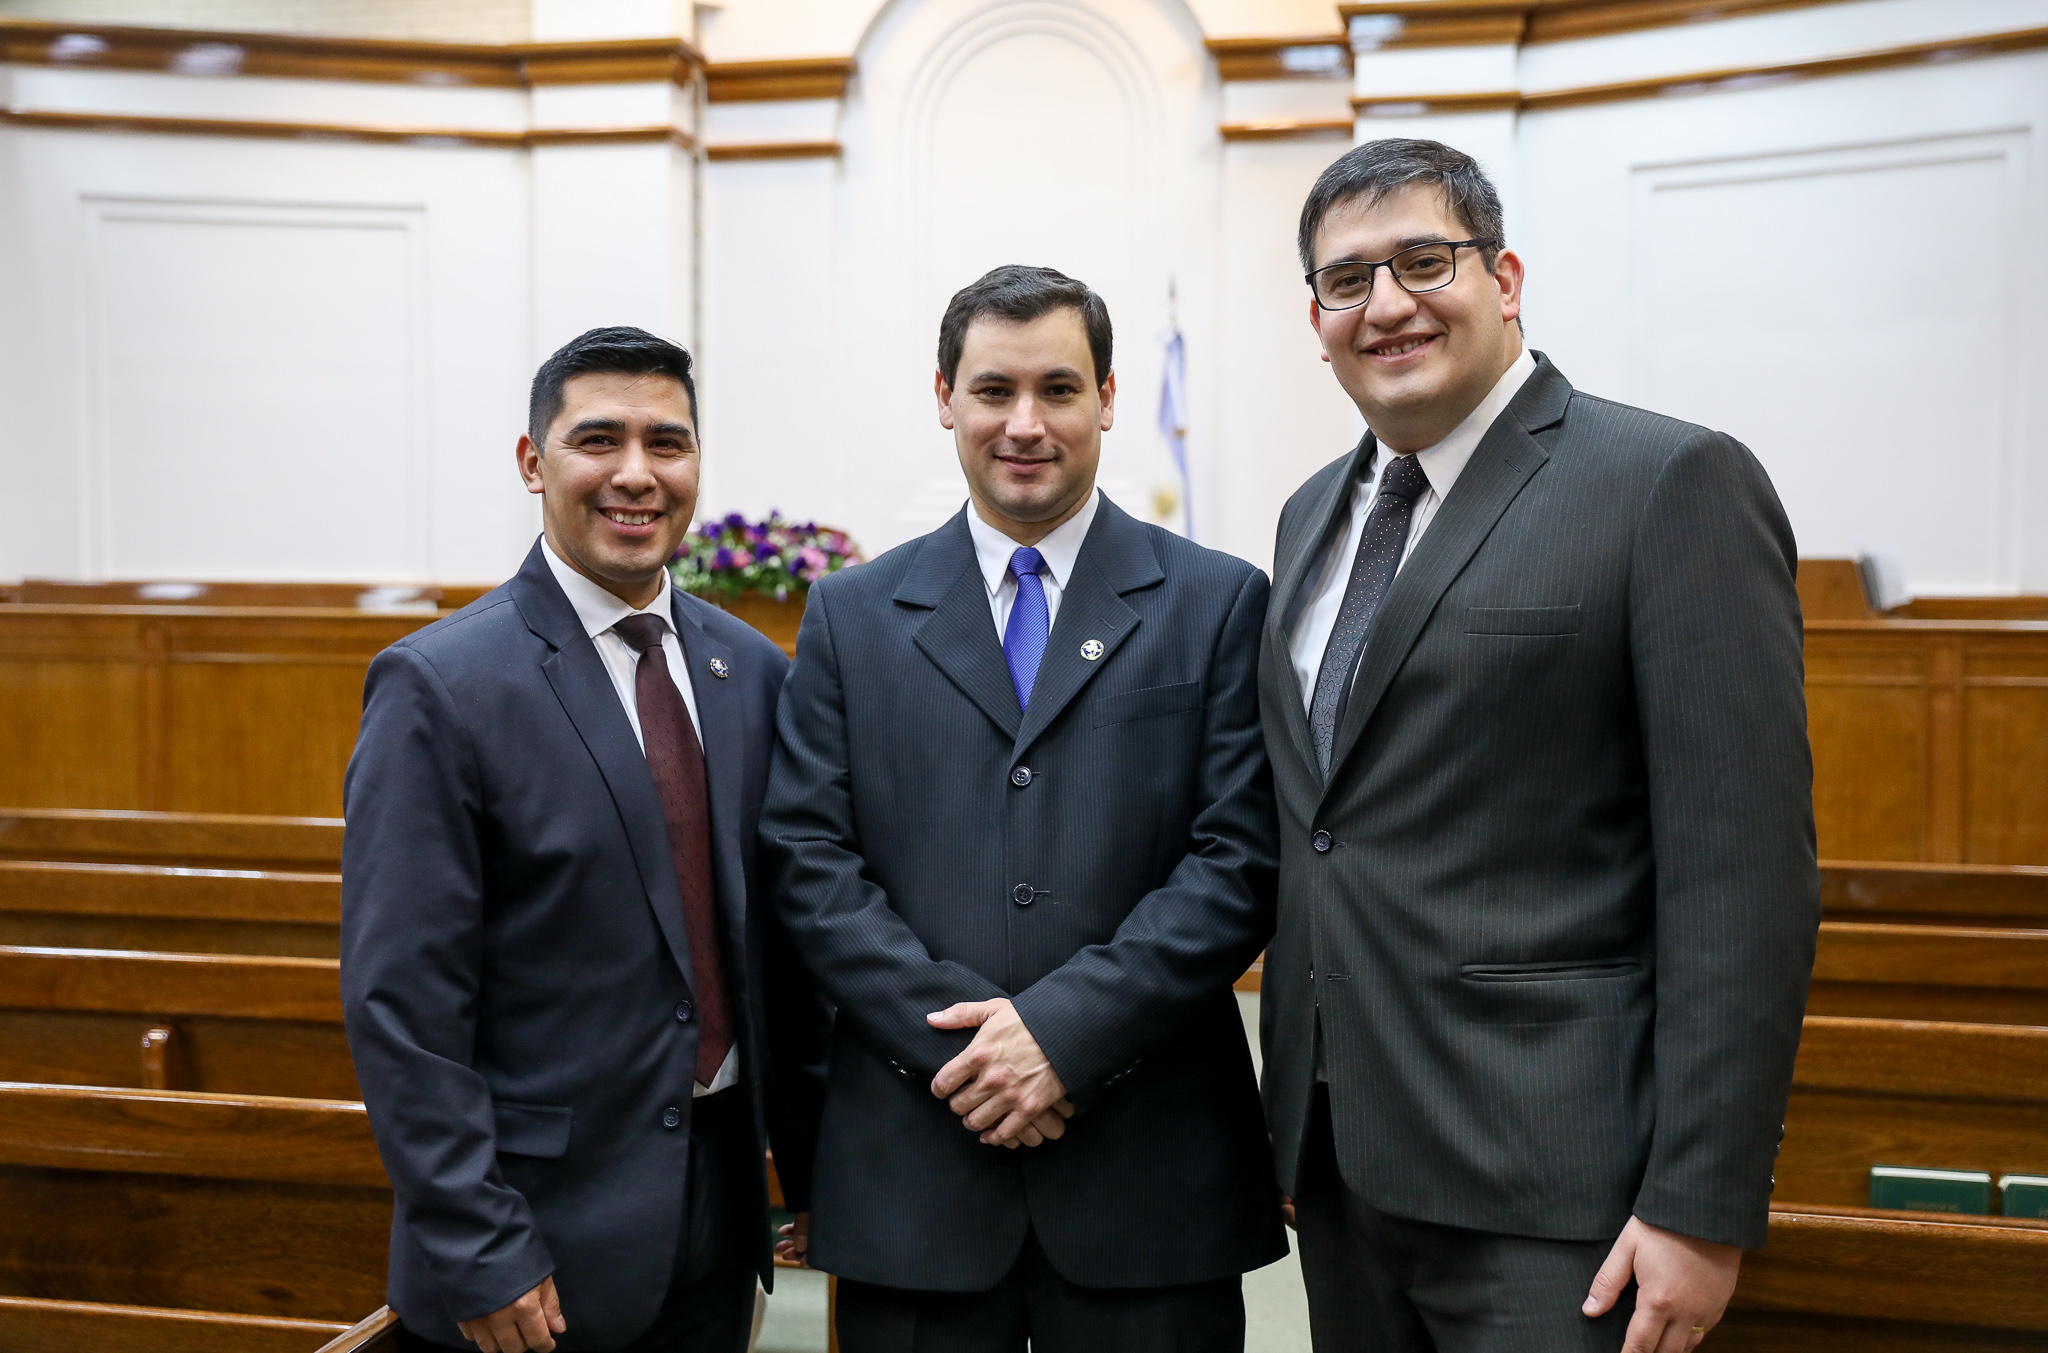 The new stake presidency of the Tierra del Fuego Argentina Stake in southern Argentina pose for a photo on June 2, 2019.